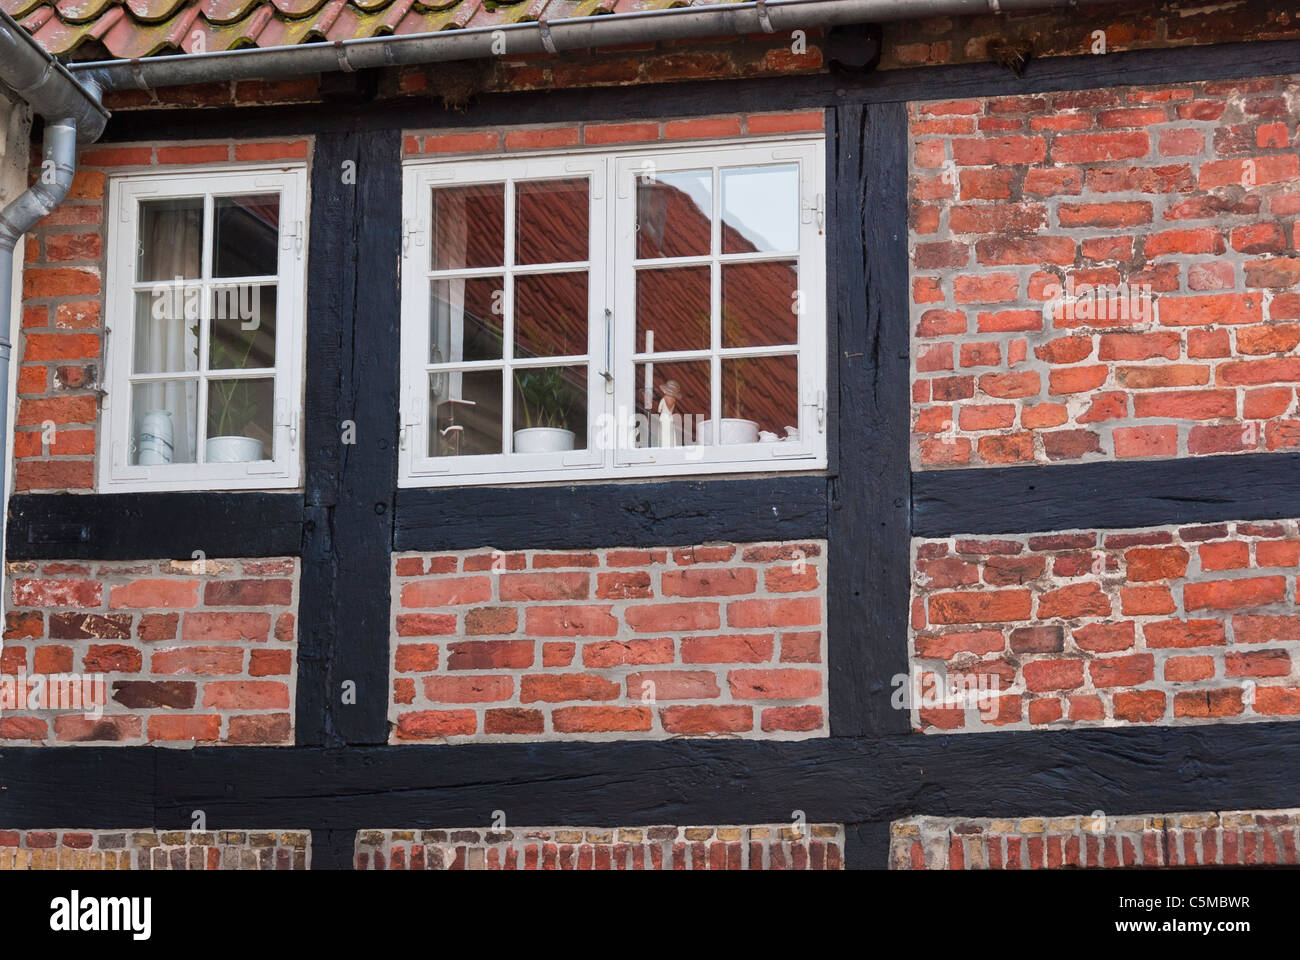 Detail of the facade of a timber-framed house with window - Stock Image